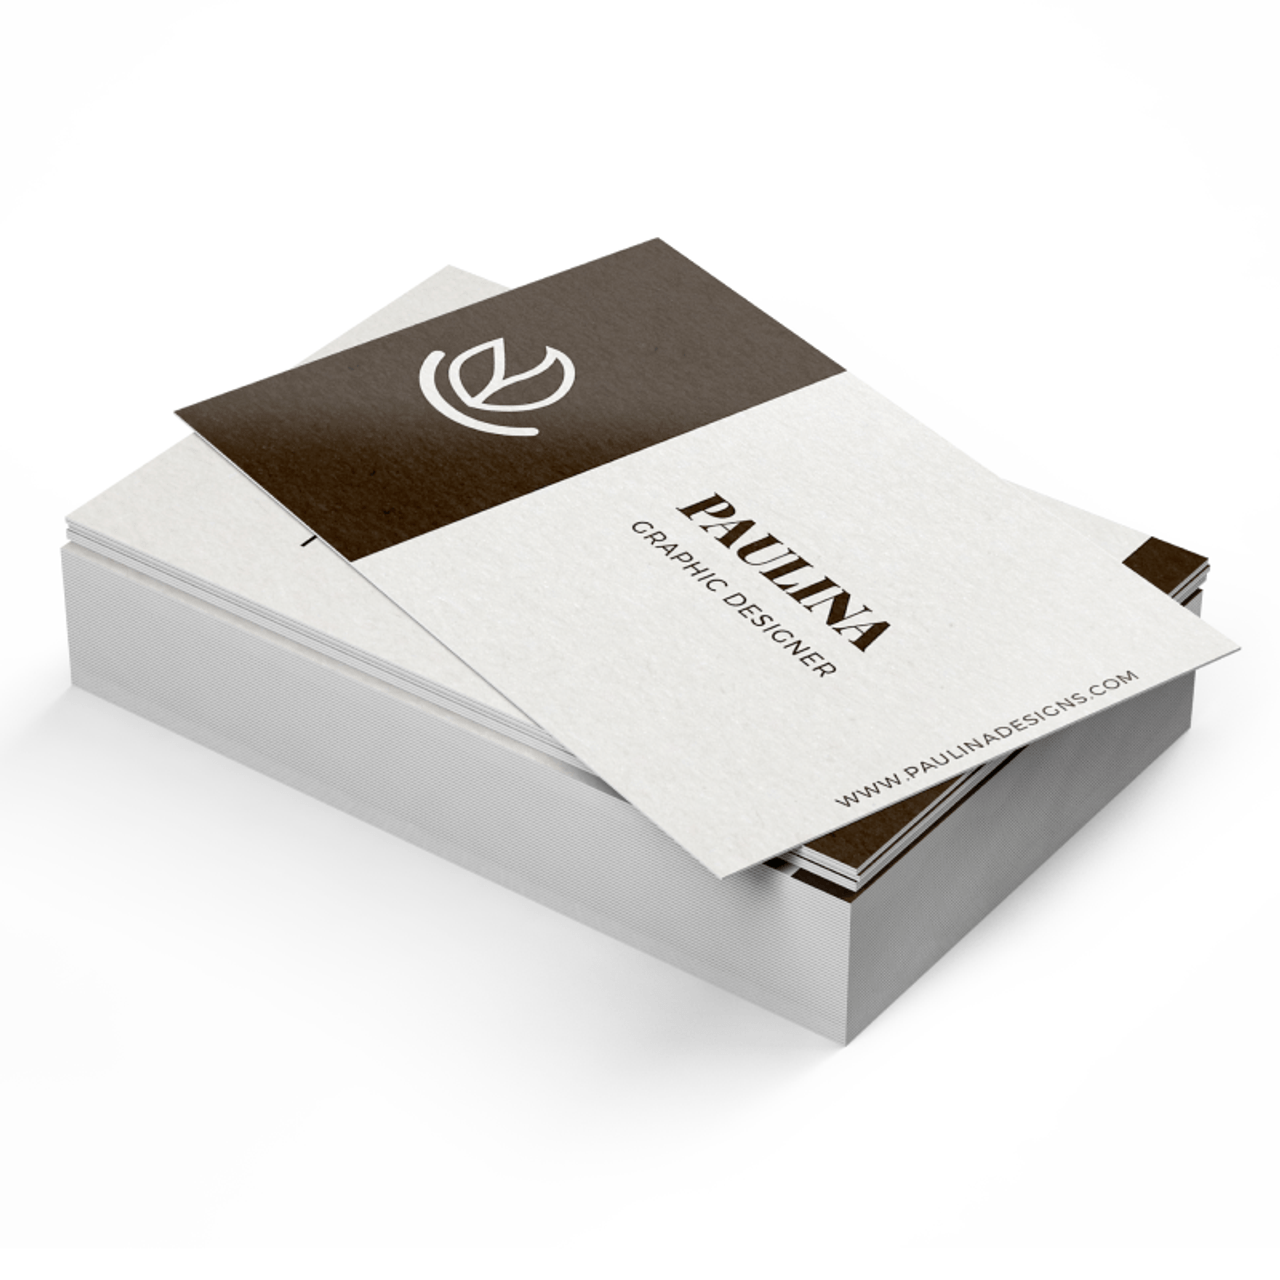 Business cards are widely used as a networking tool and a way to make a good first impression. Our 14pt Best Value business cards offer the same great quality at a lower price.